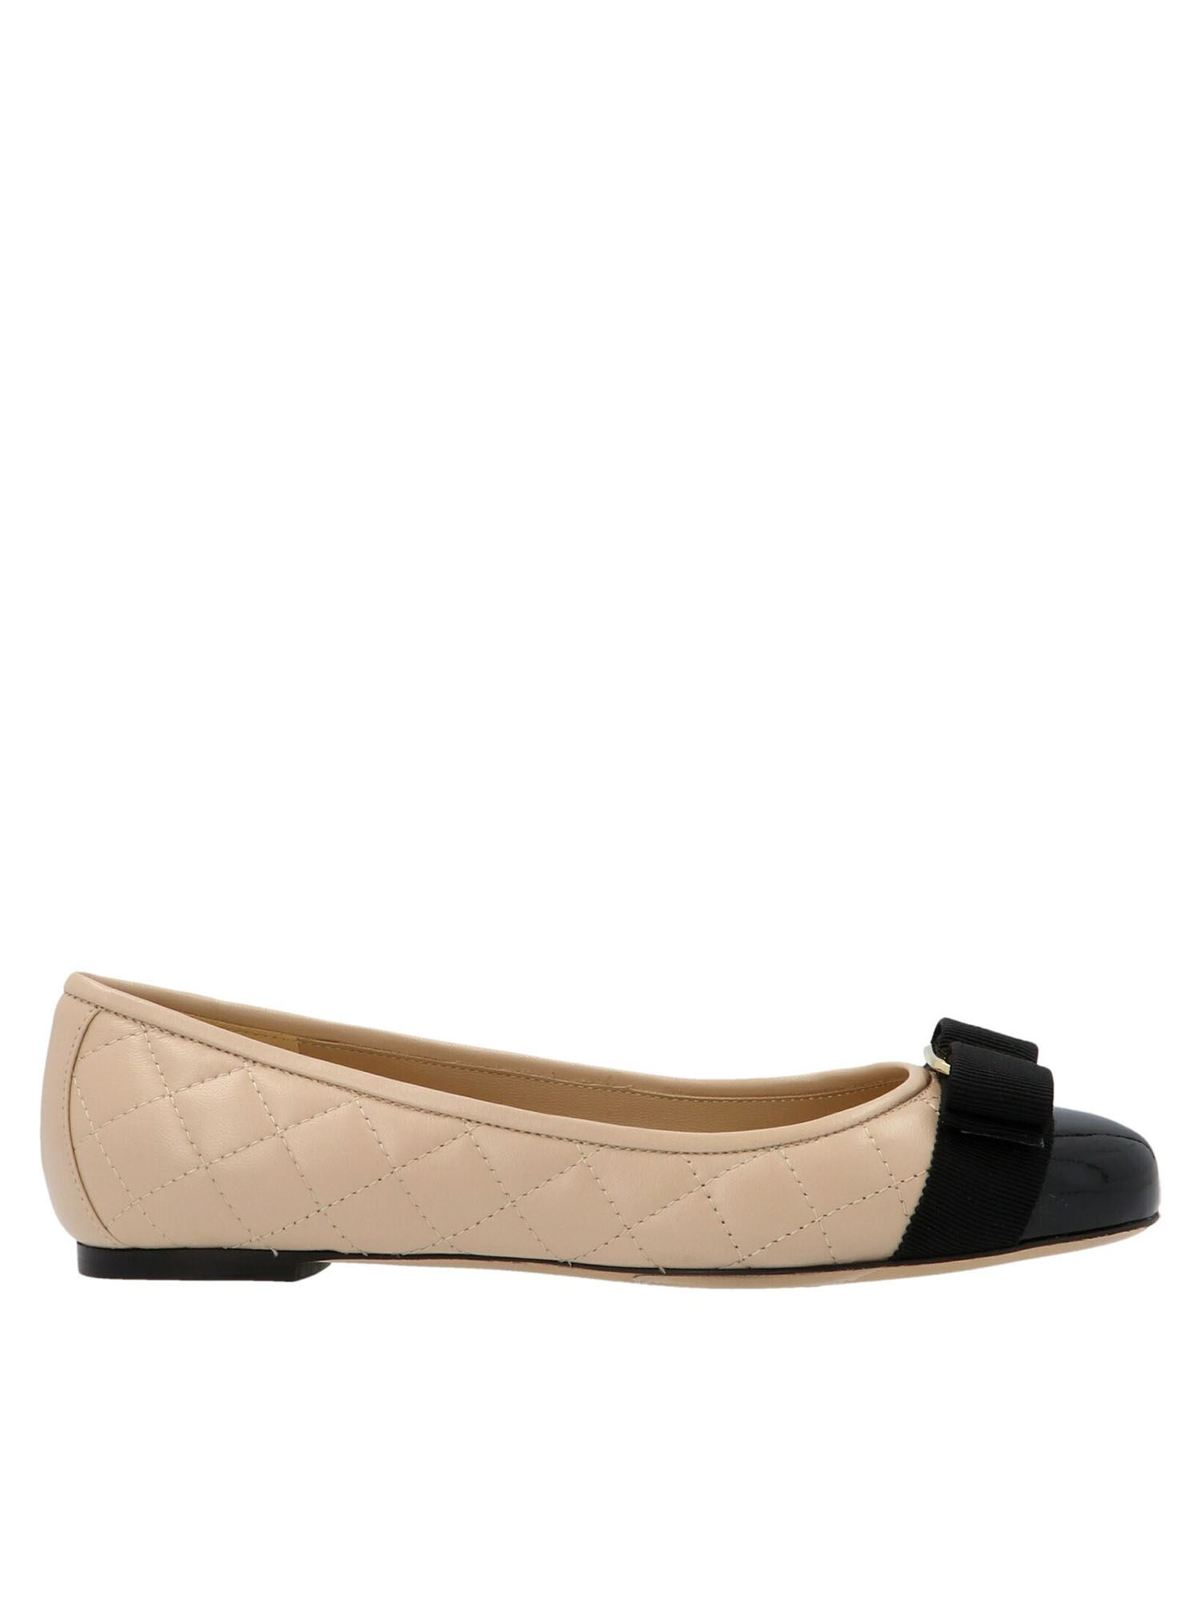 Salvatore Ferragamo Leathers QUILTED VARINA FLATS